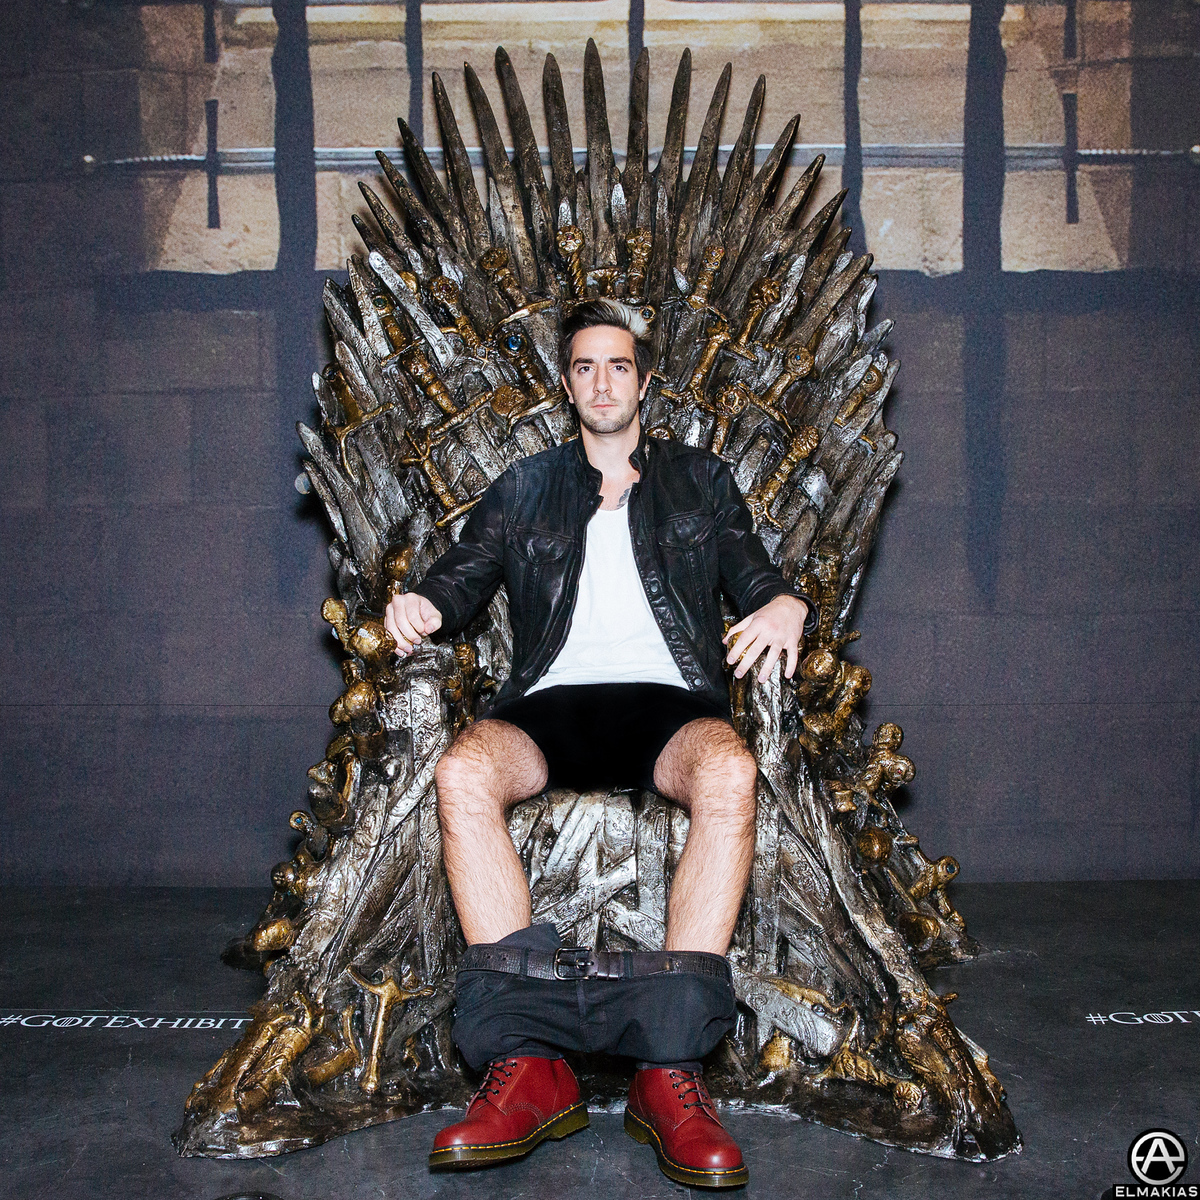 Jack at the Game Of Thrones